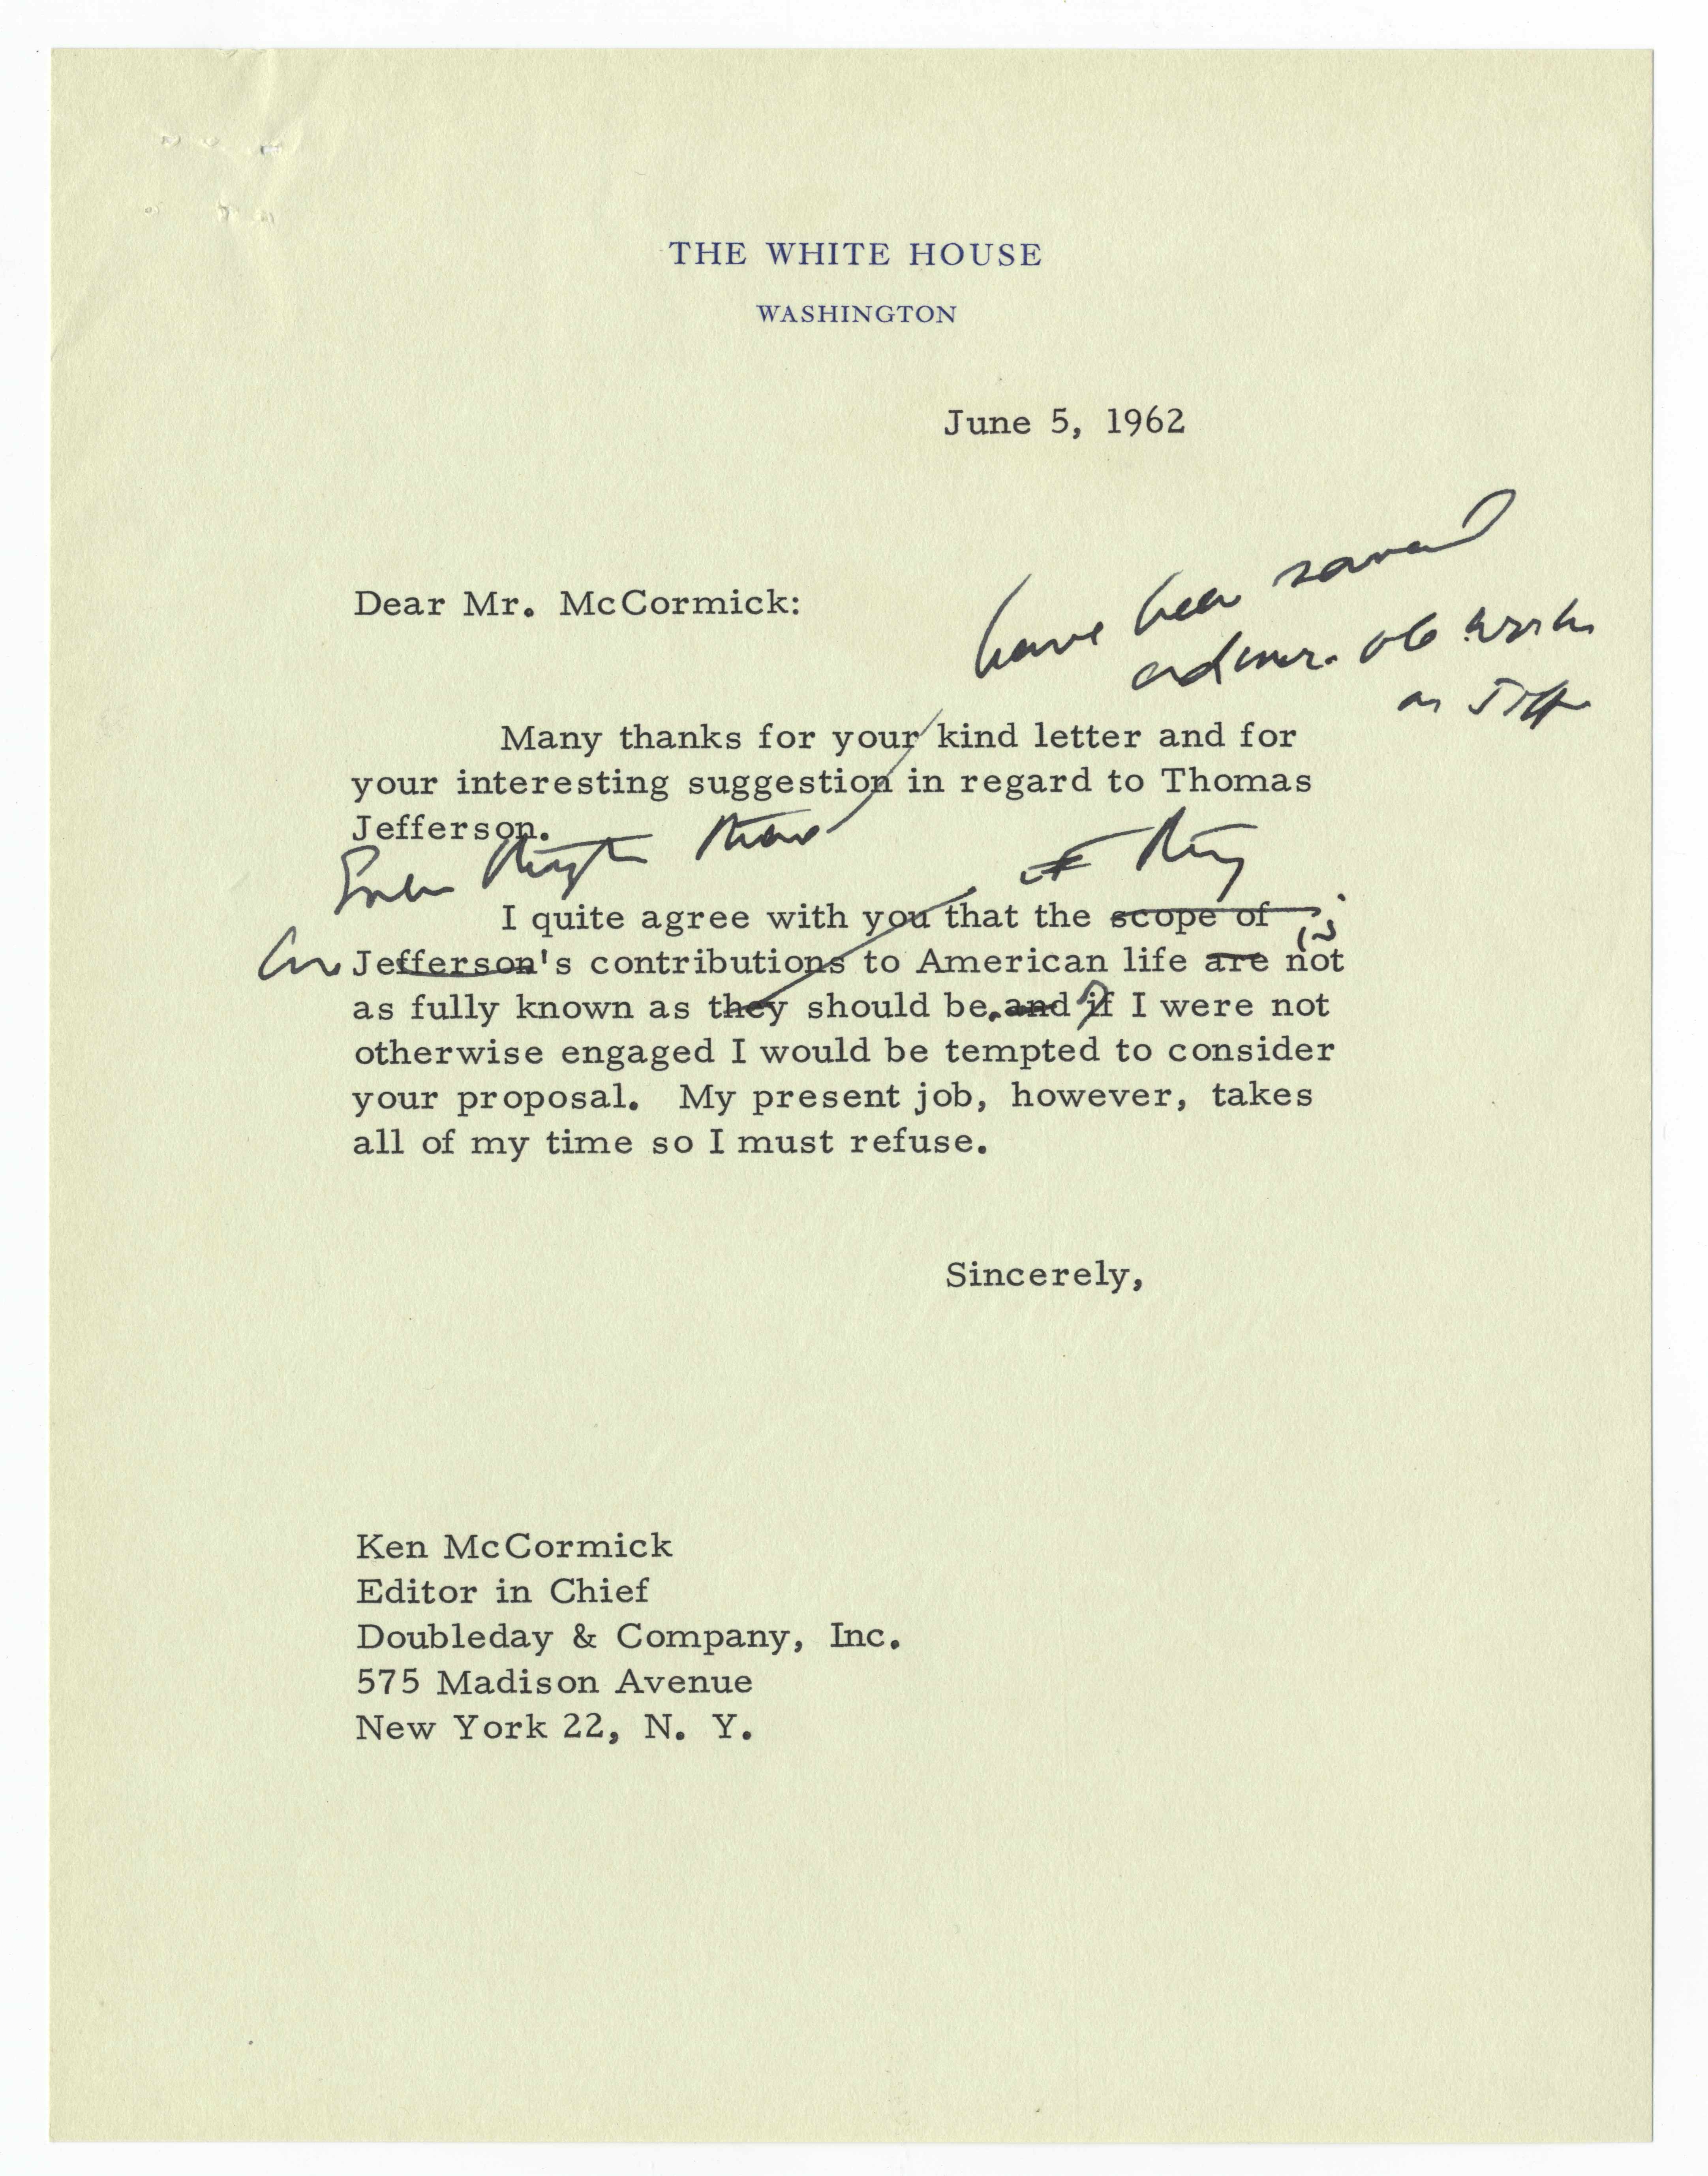 President John F. Kennedy Polishes a Letter Declining to Write a Book on Thomas Jefferson